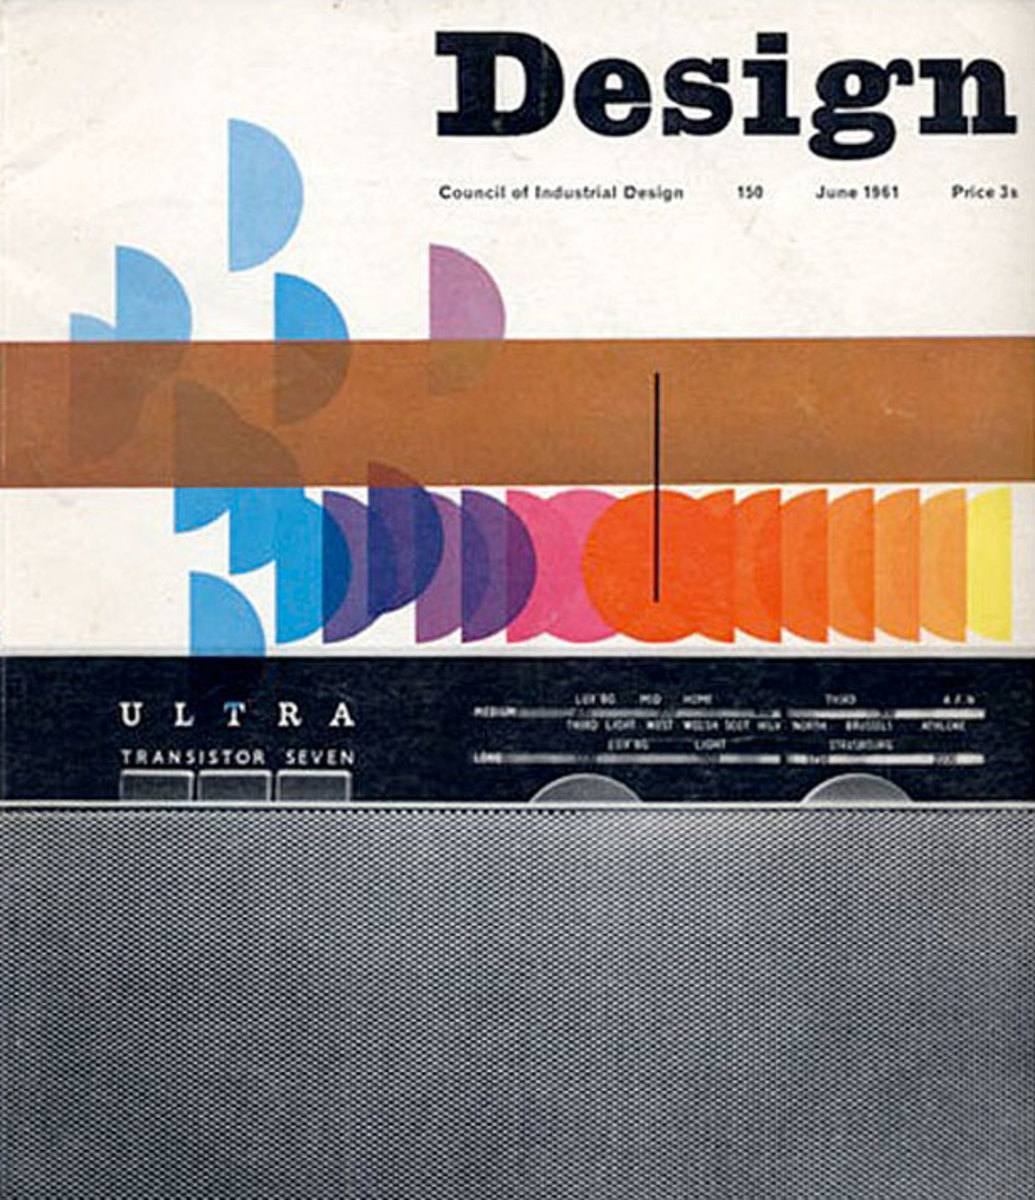 industrialdesign2